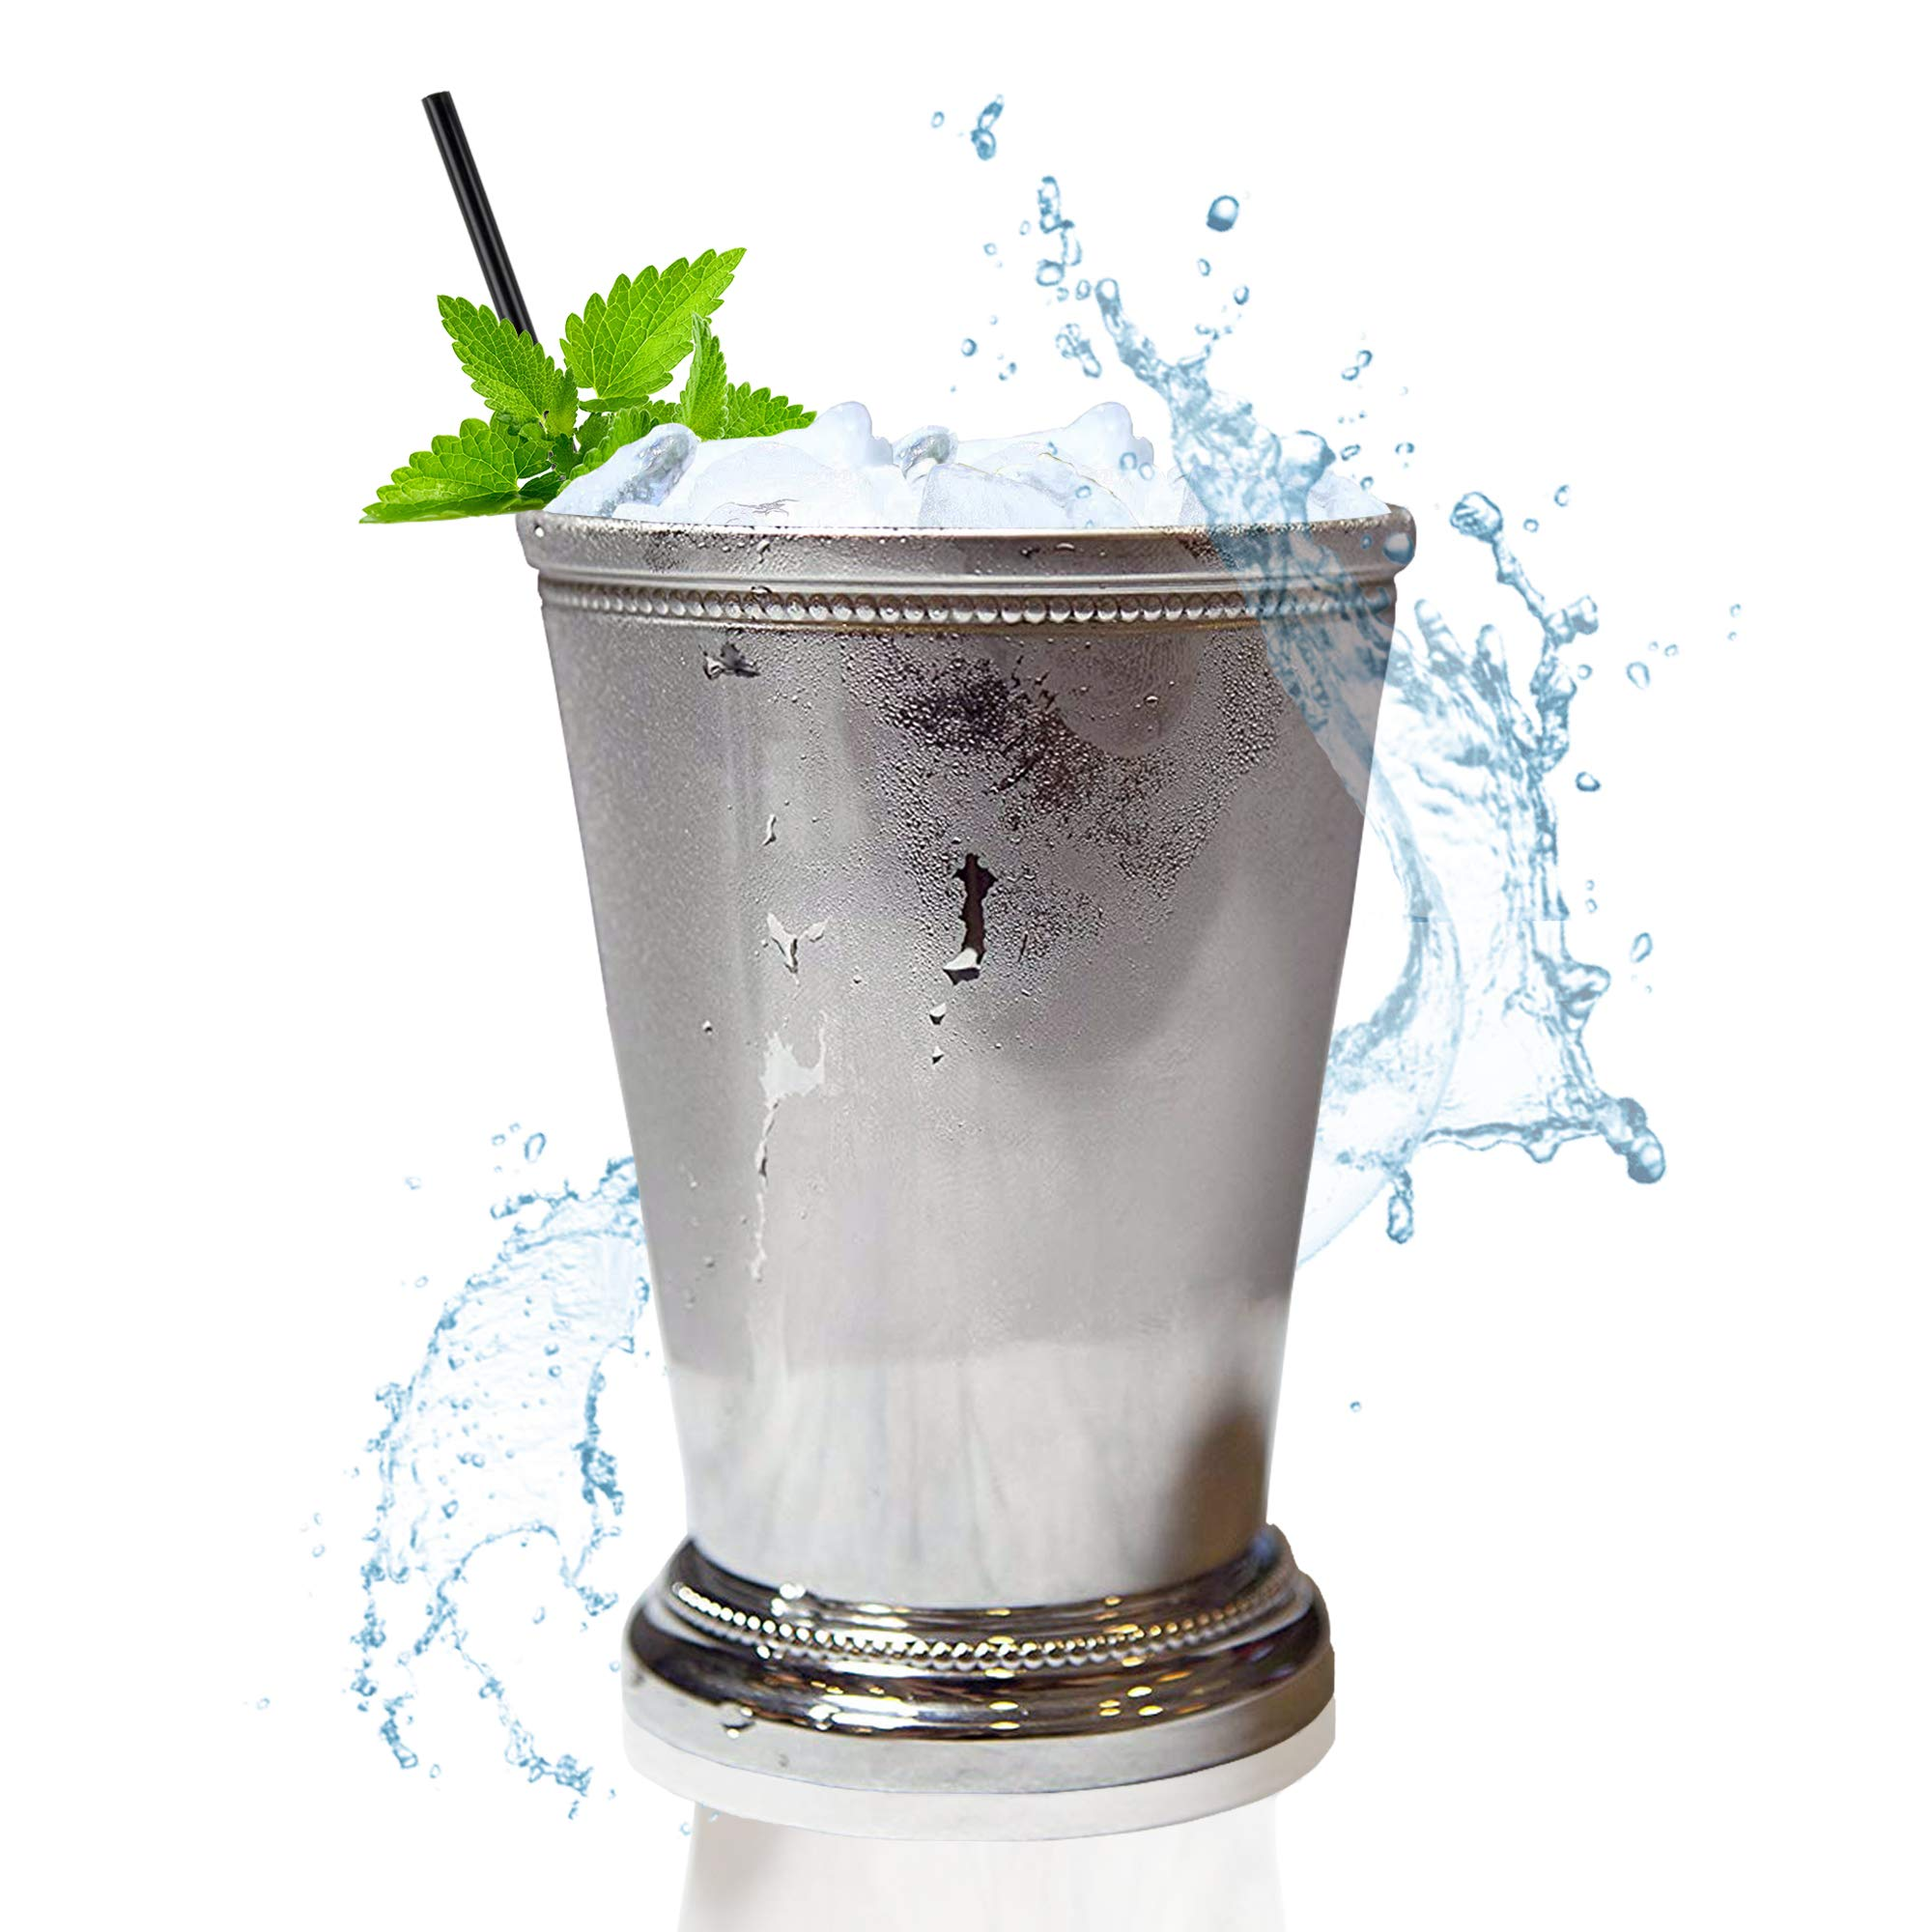 Mint Julep Cup - 12 Oz, Solid Aluminum Nickel Plated Beautifully Beaded Trim Edging Mint Julep Cups Capacity 12 Ounce for Drink Mix!